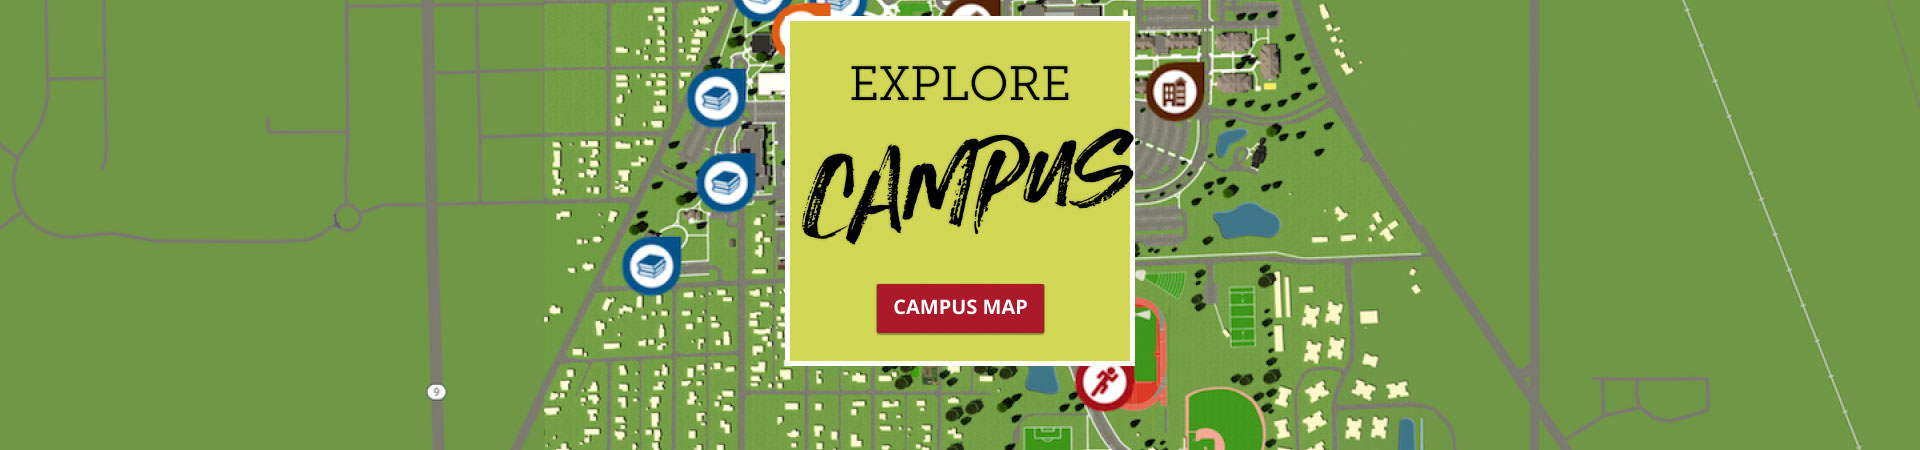 Indiana Wesleyan University Campus Life | The IWU Experience on indiana university school of medicine campus map, taylor university indiana campus map, lorain county community college campus map, indiana wesleyan university campus store, southern wesleyan university campus map, southern baptist theological seminary campus map, university of southern indiana campus map, indiana wesleyan university indoor track, iu kokomo campus map, southwestern michigan college campus map, indiana university east campus map, west virginia wesleyan college campus map, dakota wesleyan university campus map, marian college campus map, ivy tech community college campus map, indiana wesleyan university mission, covenant theological seminary campus map, tabor college campus map, kansas wesleyan university map, marygrove college campus map,